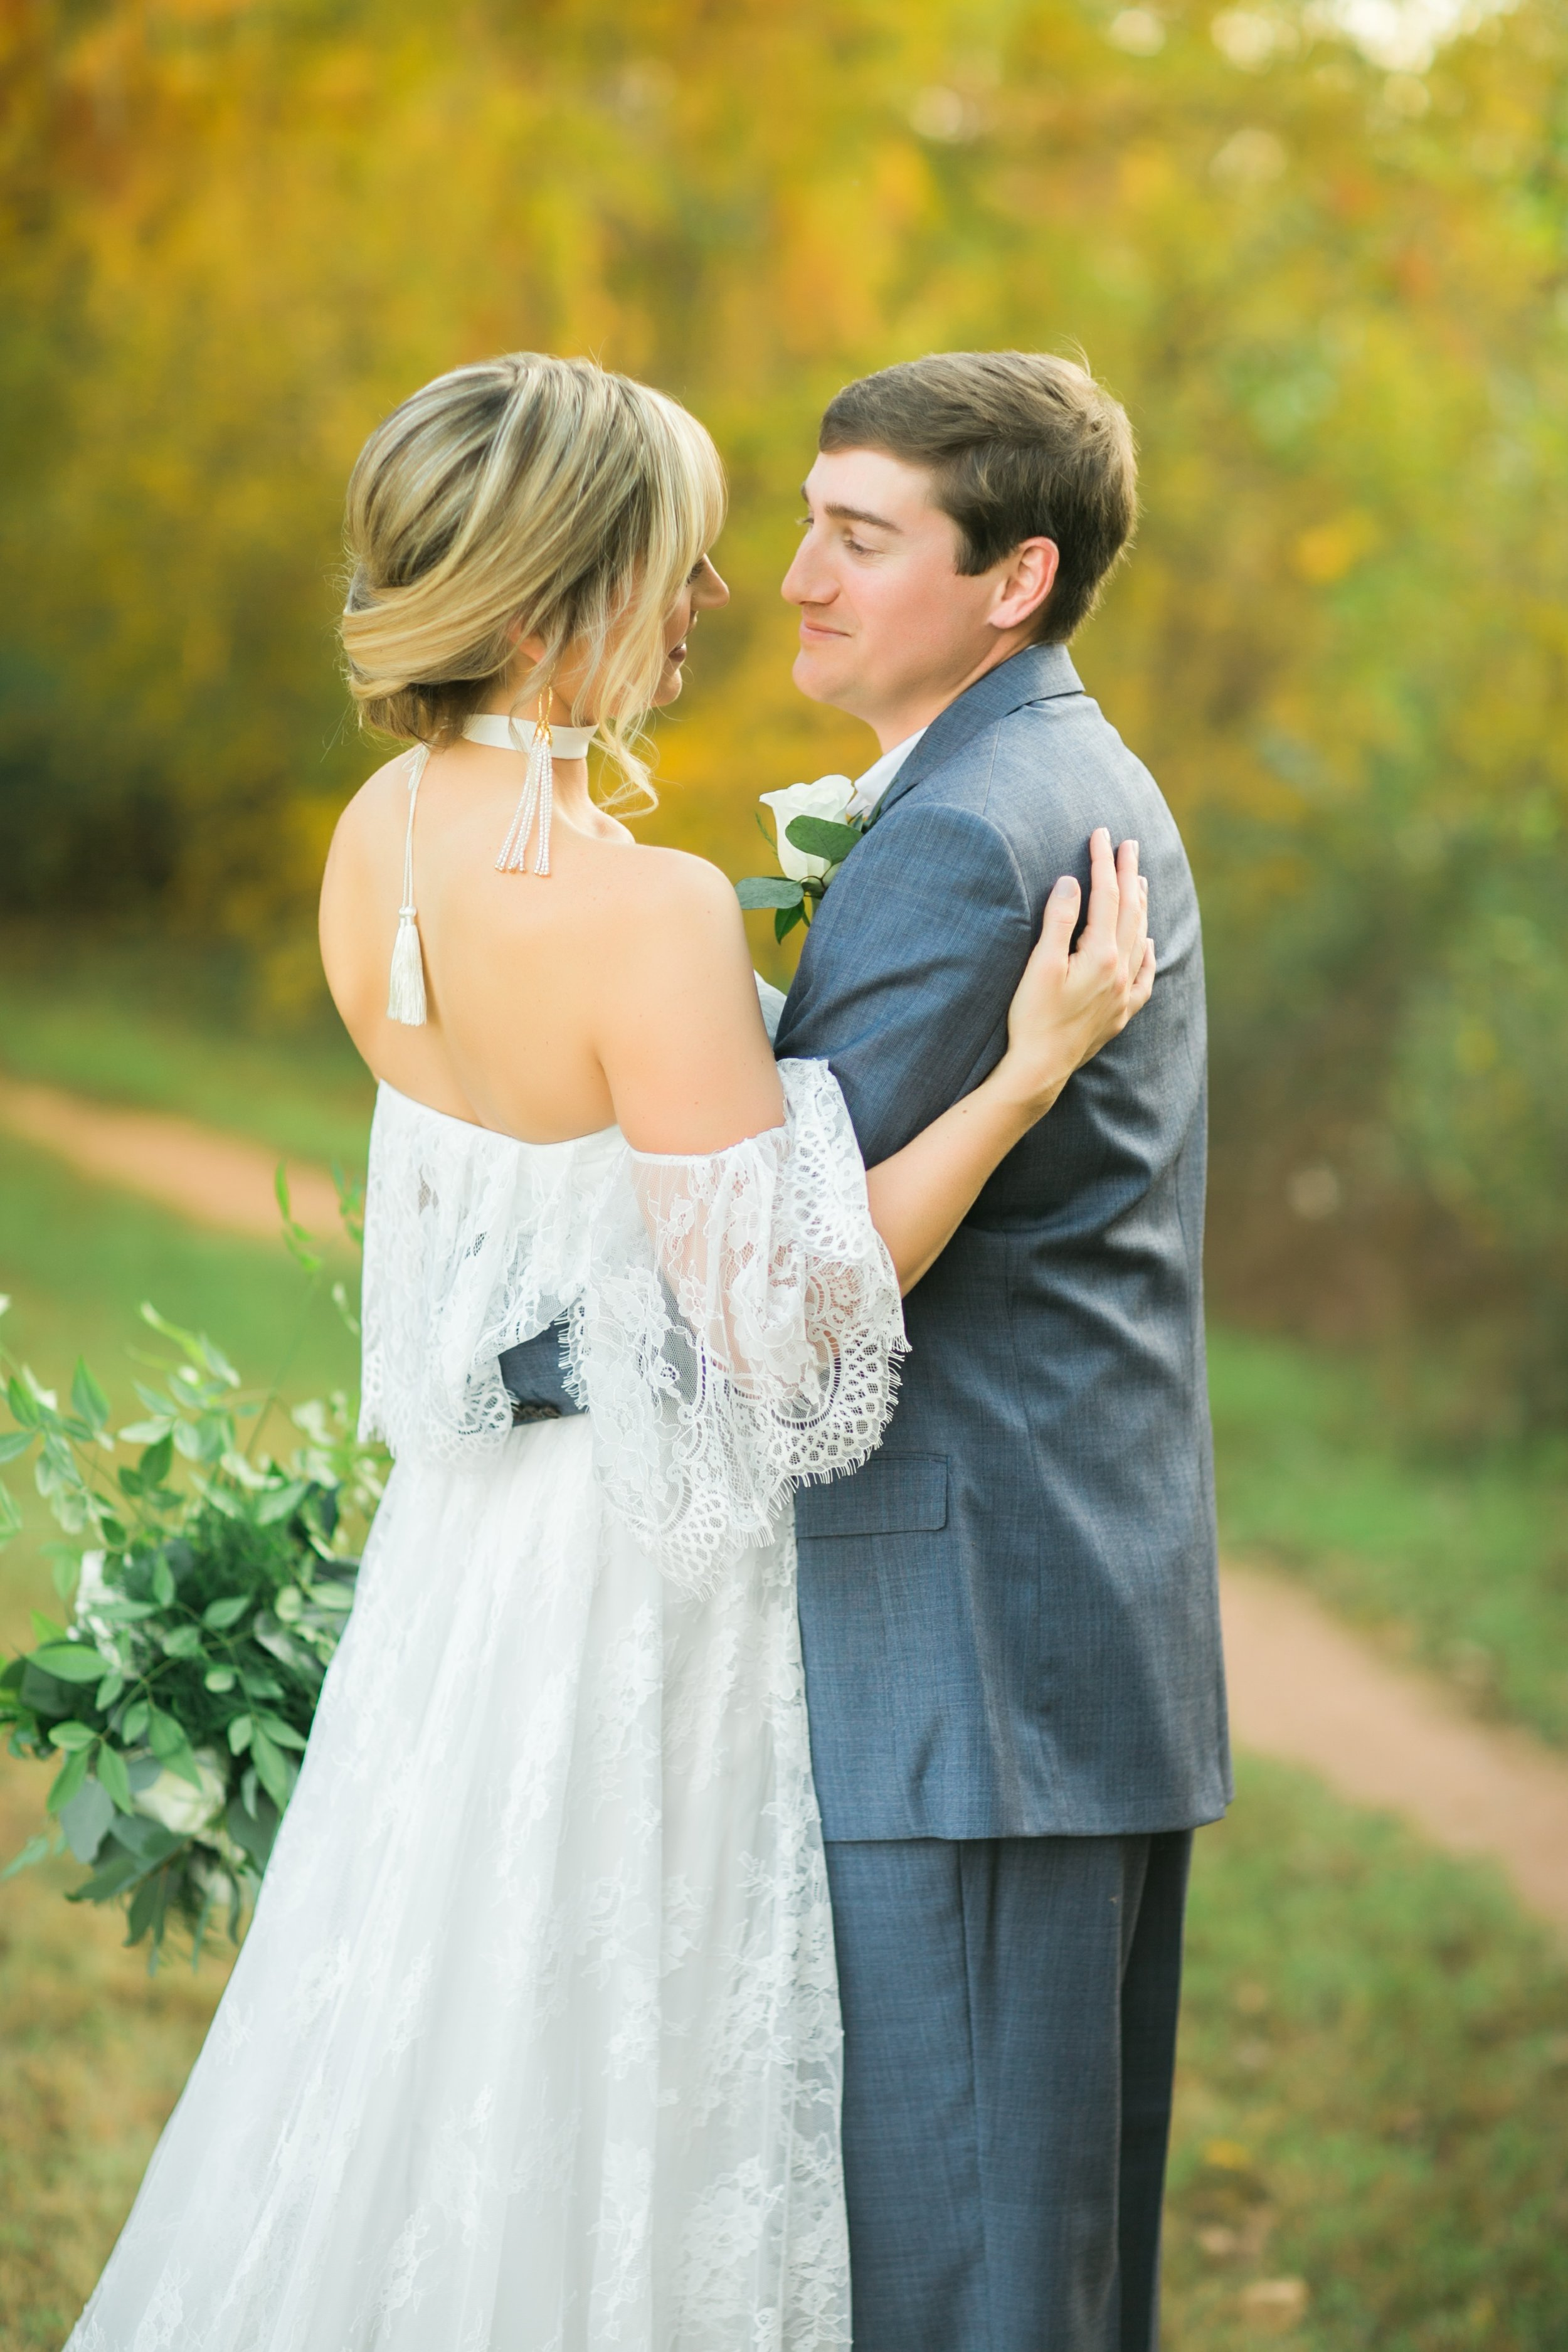 Magan-Landon-Surprise-wedding-at-southern-jeweled-warehouse-wichita-falls-texas-lauren-pinson-025.jpg